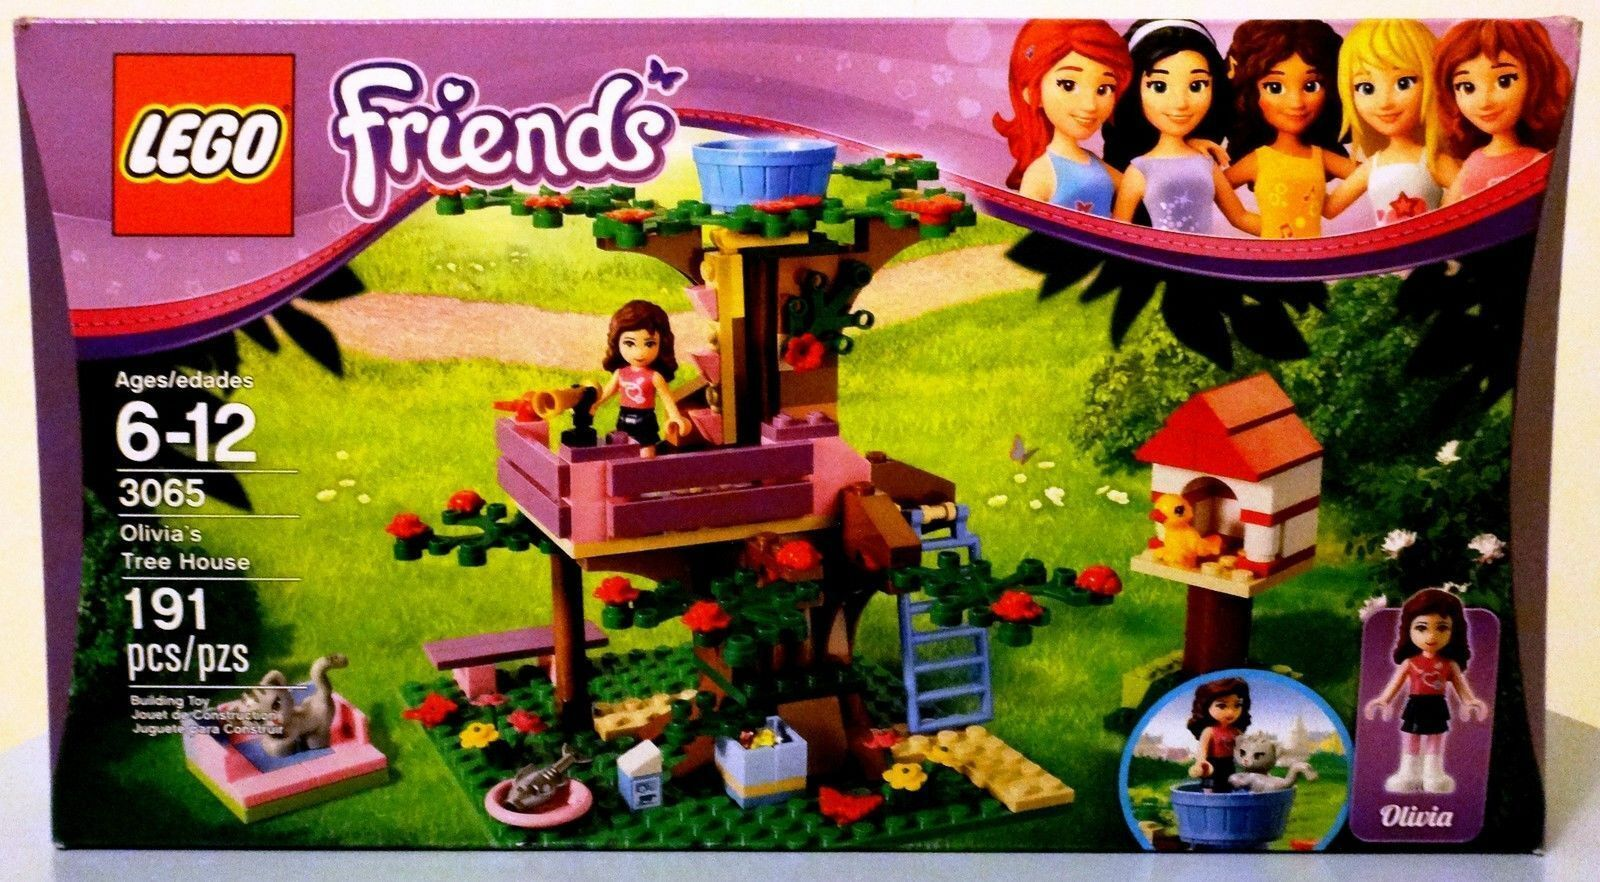 LEGO FRIENDS 3065 OLIVIA'S TREE HOUSE Factory Sealed RETIRED Girls - NEW